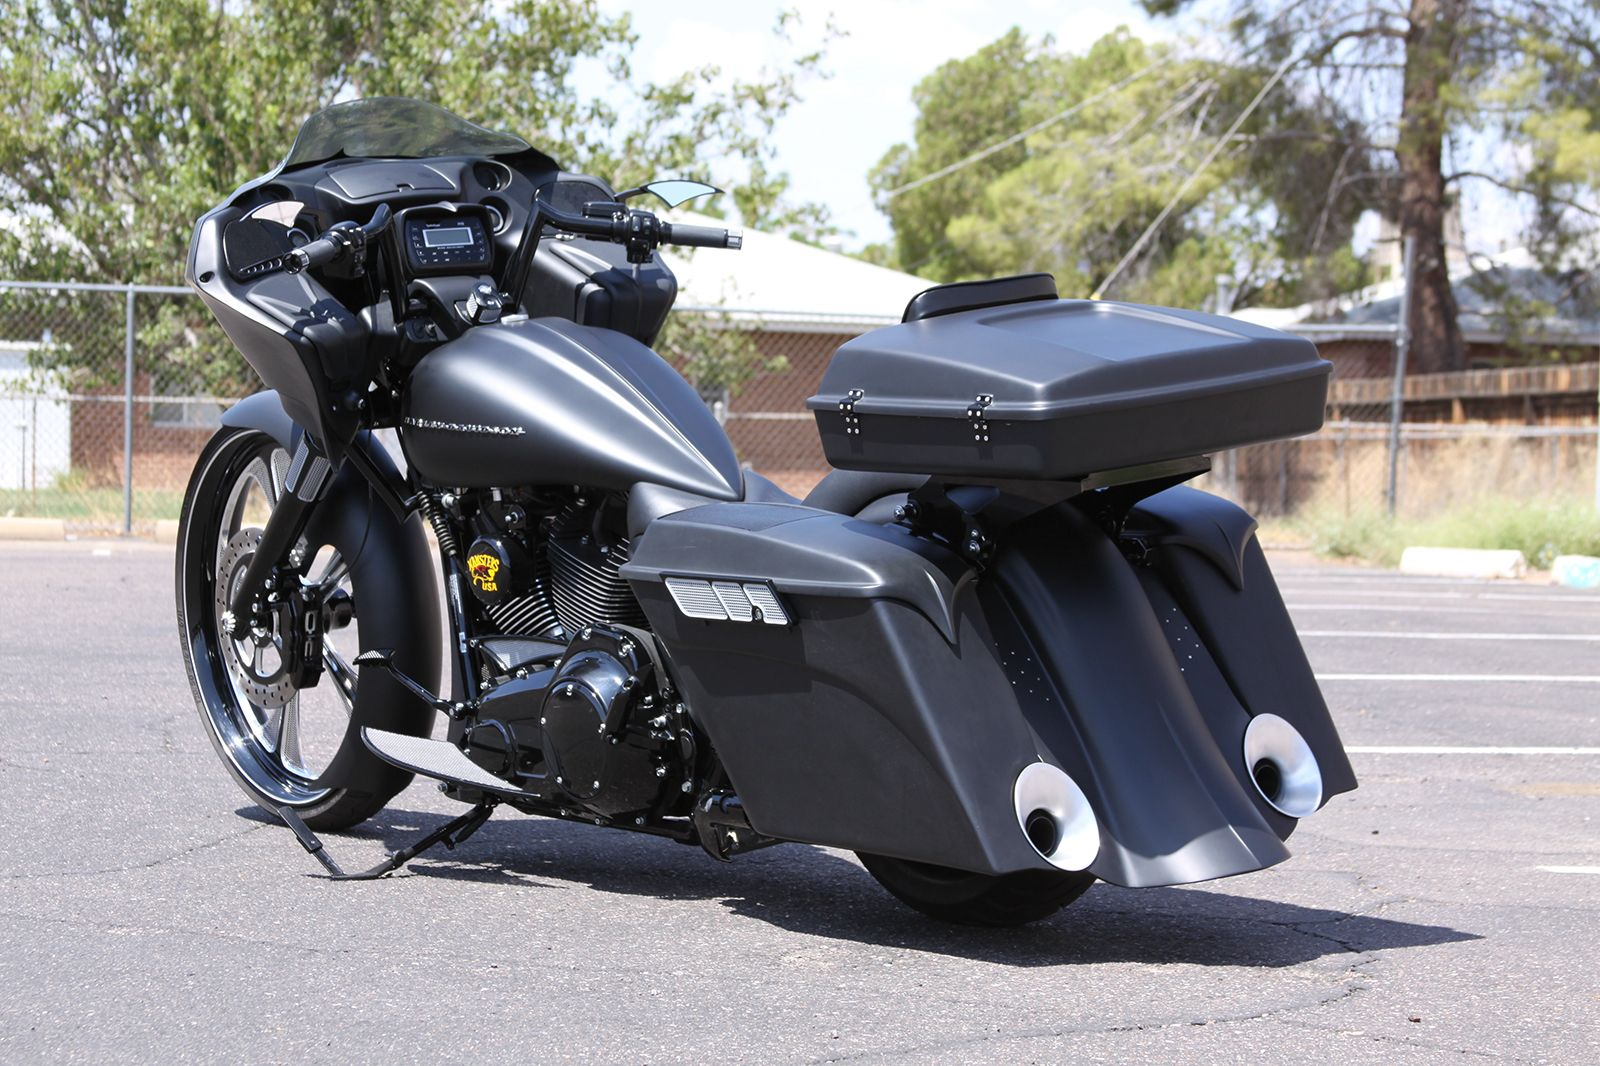 paul yafee 39 s personal 2011 road glide for sale on cars planes and boats. Black Bedroom Furniture Sets. Home Design Ideas